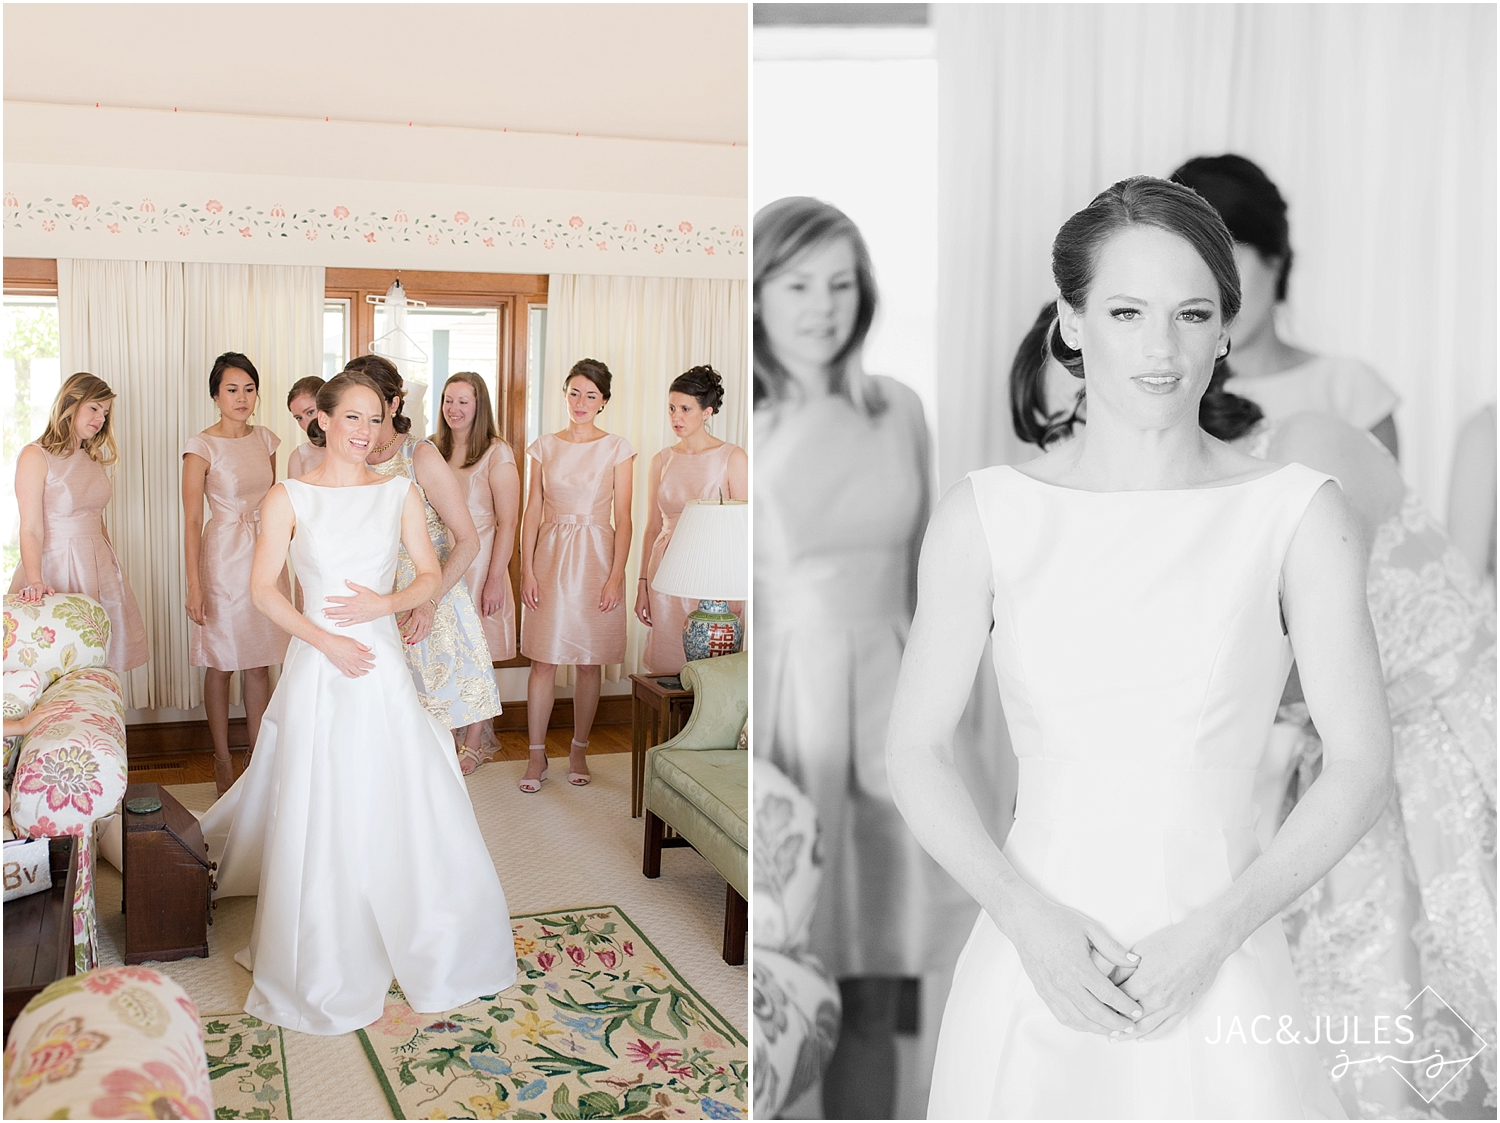 jacnjules photographs bride getting ready for her wedding at st. simon by the sea in mantoloking nj